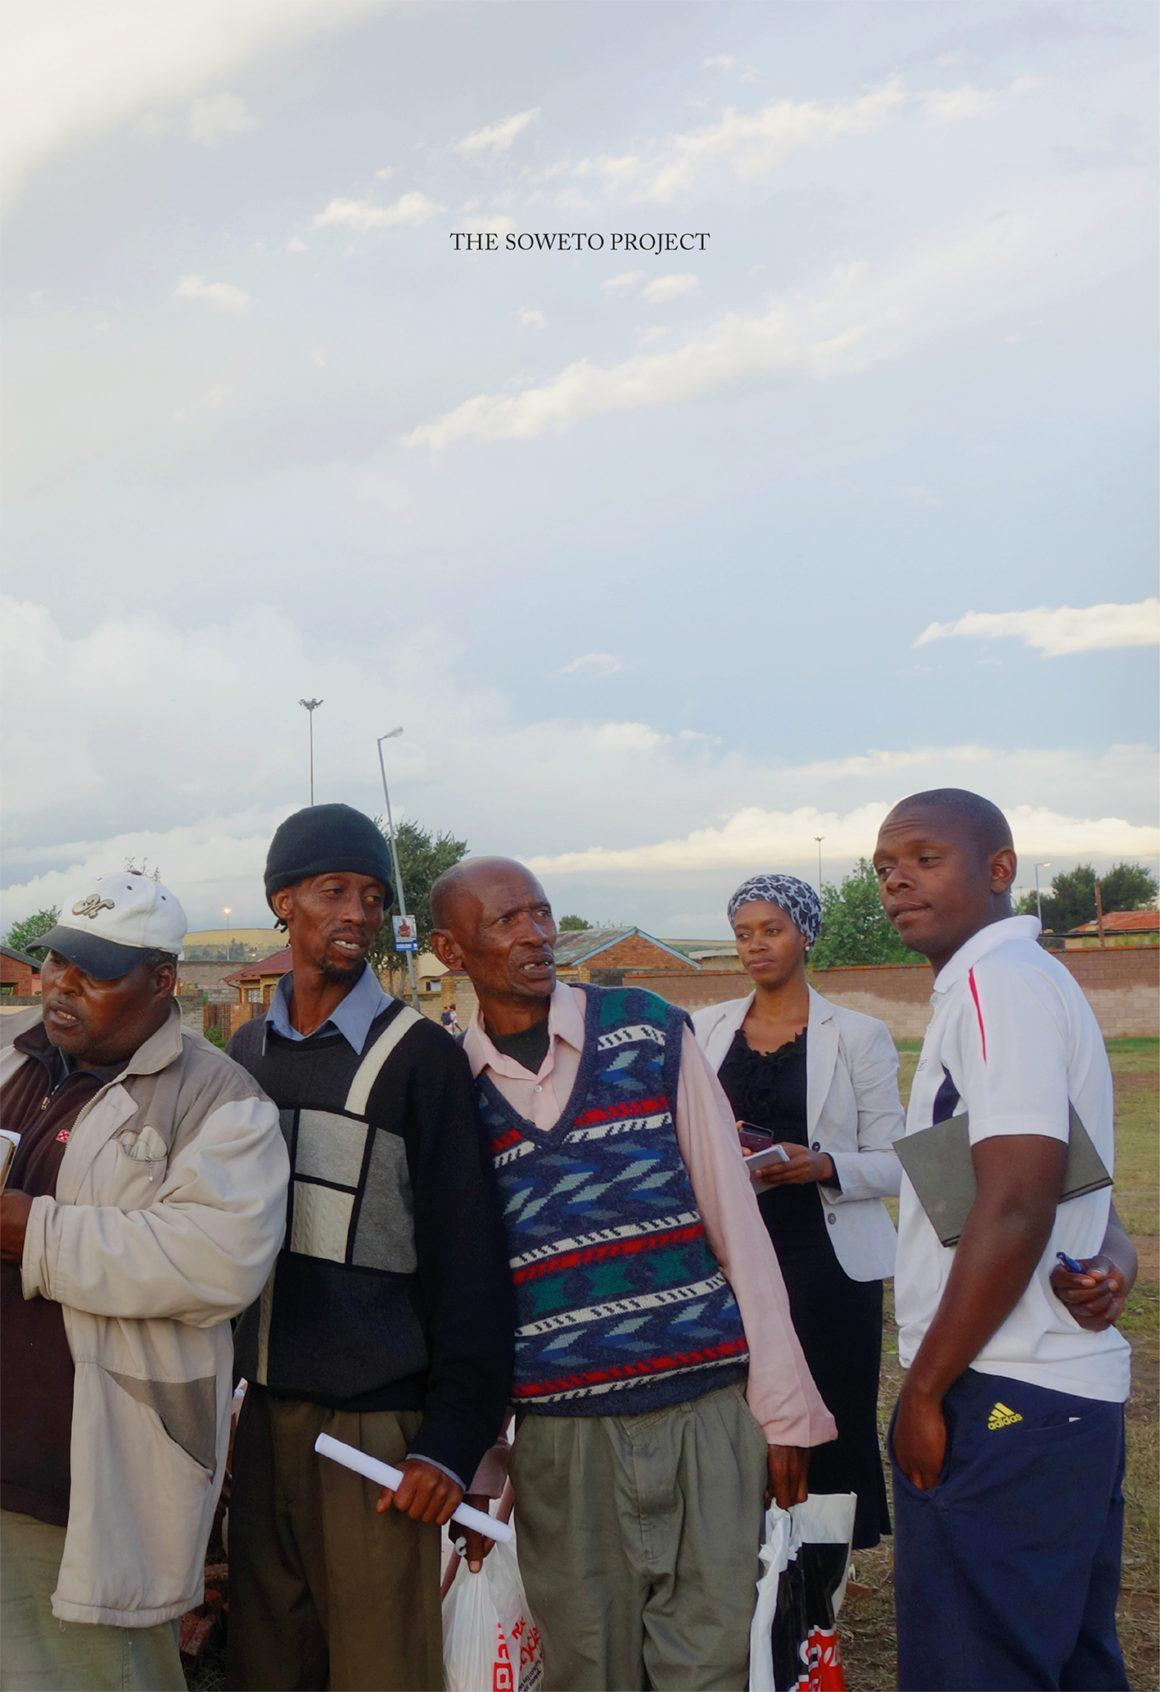 The Soweto Project